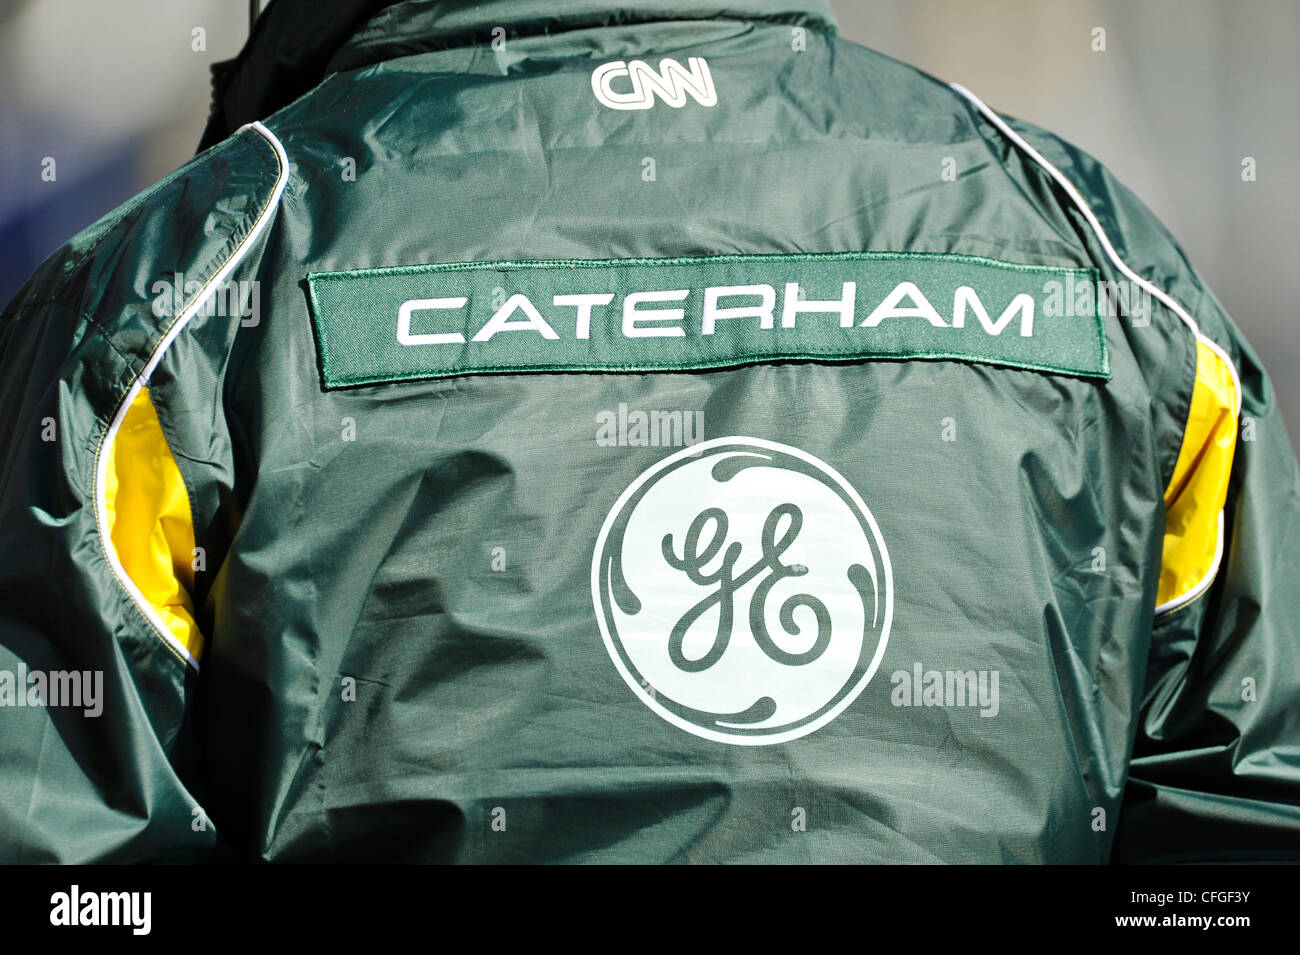 Caterham brand logo on jacket of team member during Formula One testing sessions on Circuito Catalunya, Spain - Stock Image